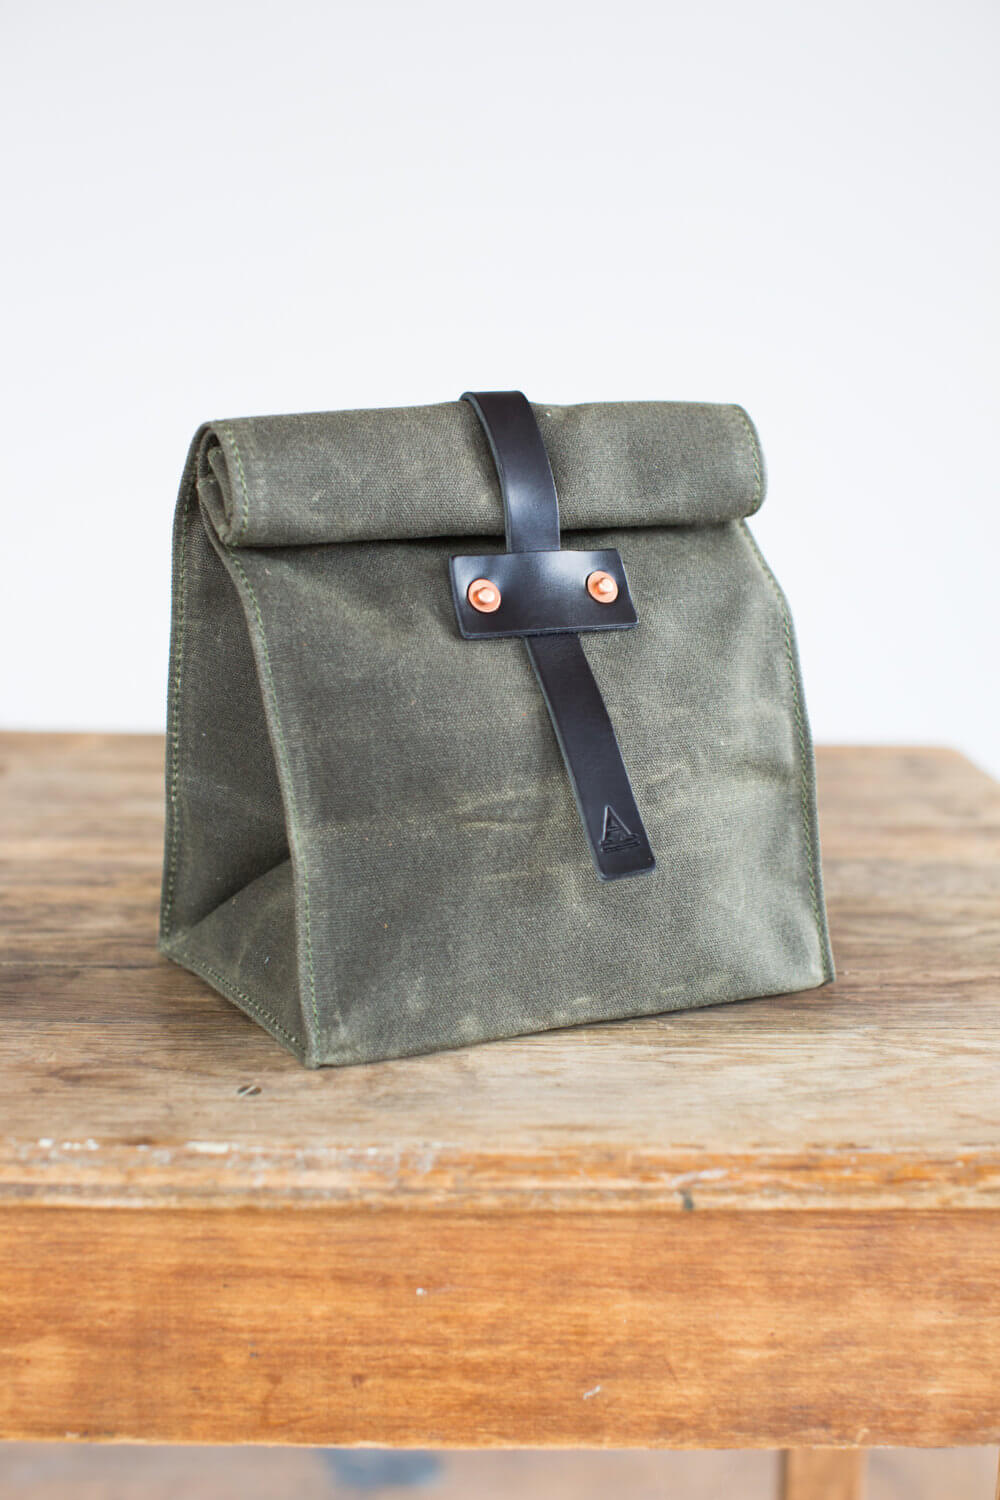 #8 Artifact Bag | Sophisticated Lunch Carriers | Image Source: Image Source etsy.com